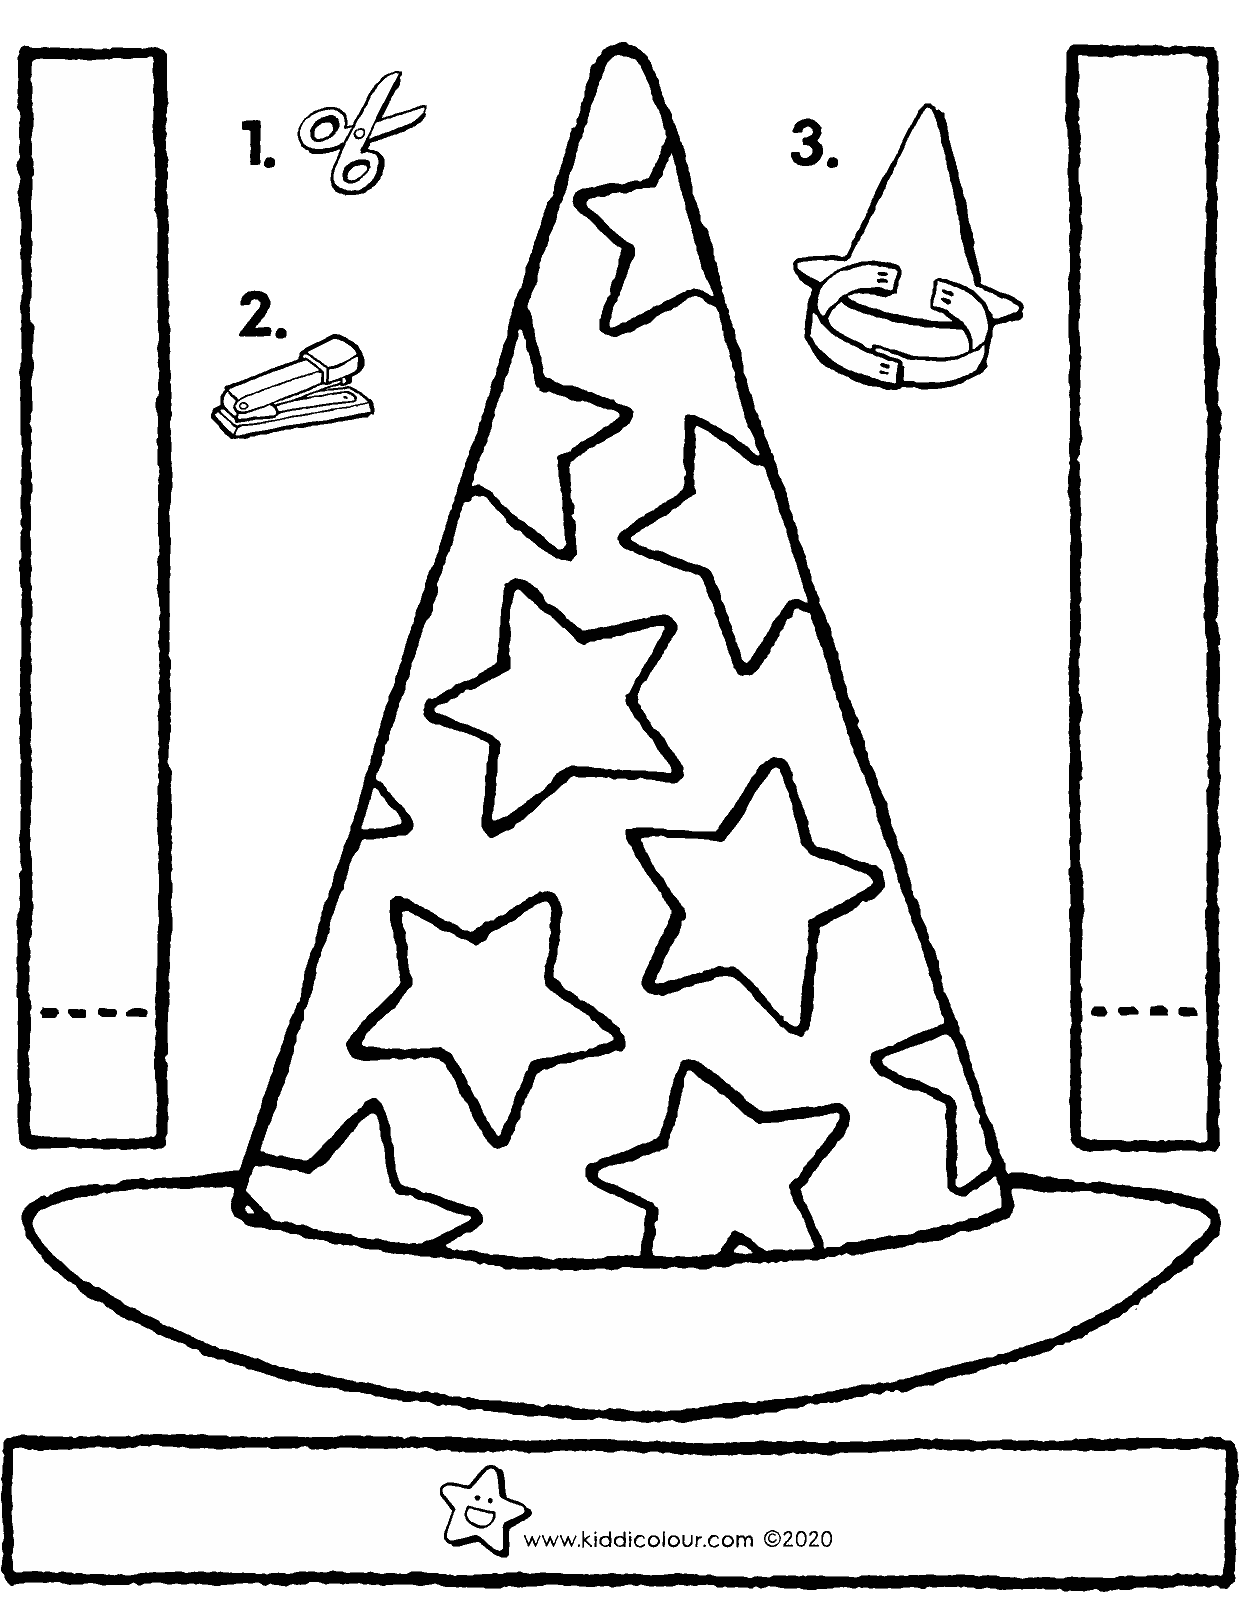 make your own magician's hat with stars colouring page drawing picture 01V